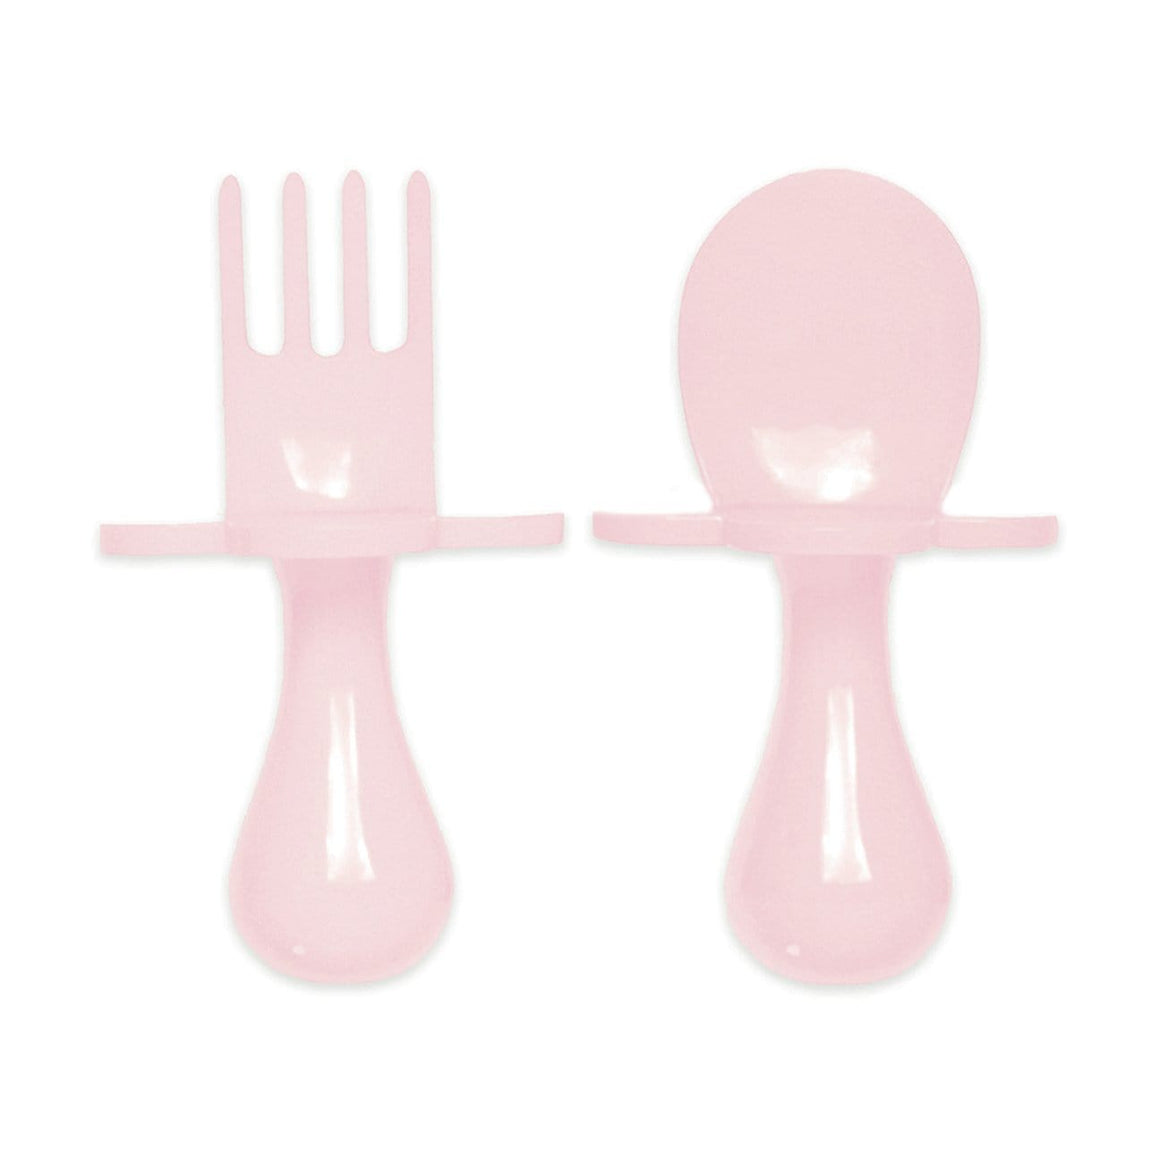 Grabease USA- Eating Utensils Set For Toddlers -Are You Blusing (Light Pink) 美國Grabease幼兒學習雲朵餐具-淺粉紅色